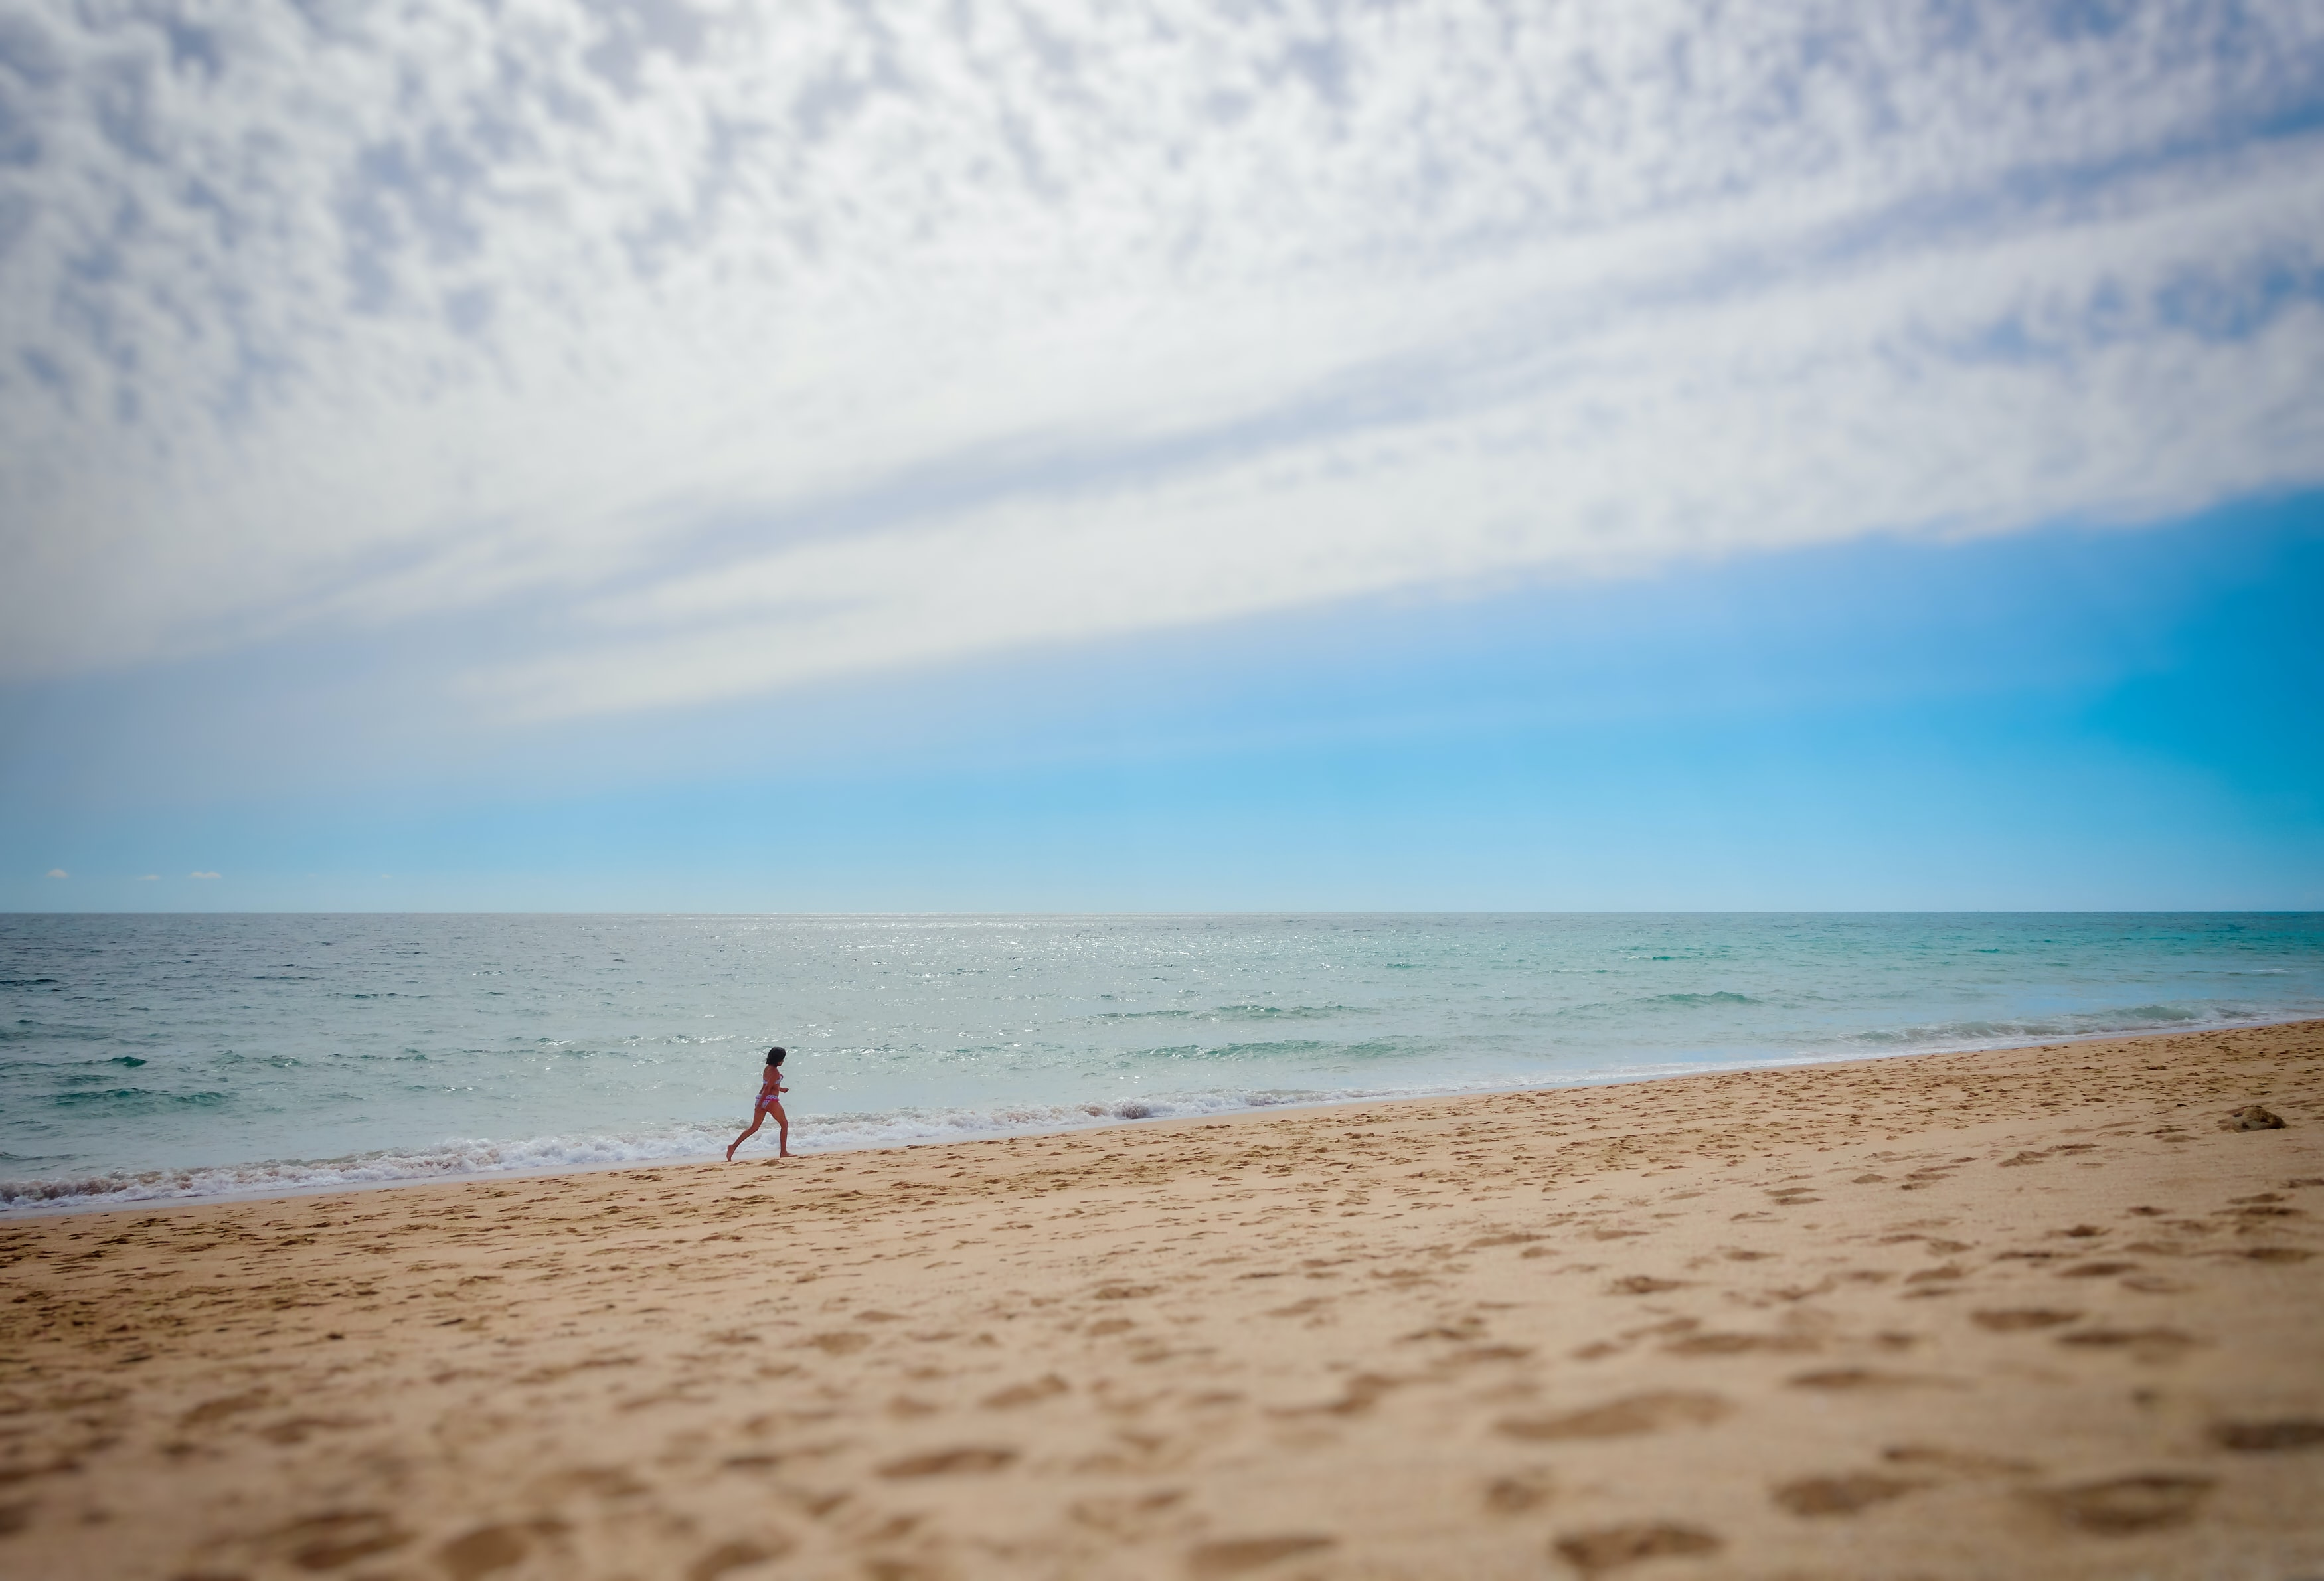 person running on beach during daytime